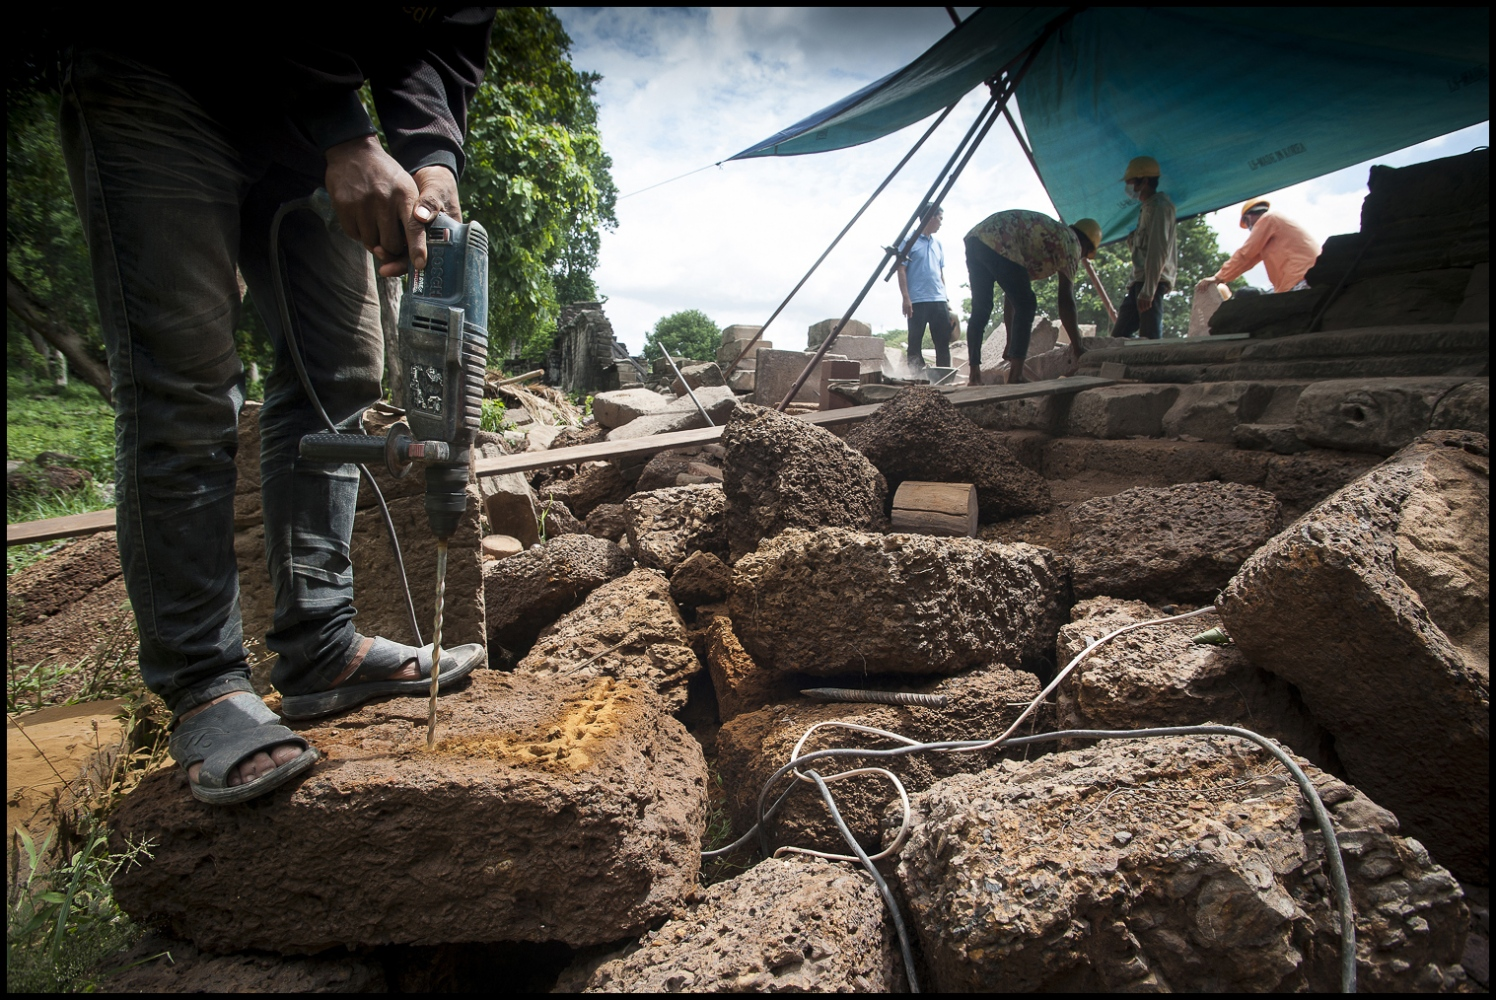 """Khmer stone masons at work on the laterite stones at the Banteay Chhmar Temple in Cambodia. Built by Khmer King Jayavarman 7th (1181-1219). They have spent the last 3 years painstakingly dismantling and rebuilding this 20 metre section of the temple ruins at Banteay Chhmar. John Sanday """"The Khmer stone masons have an affinity with the stone. They're allways touching it feeling for the accuracy of the join."""